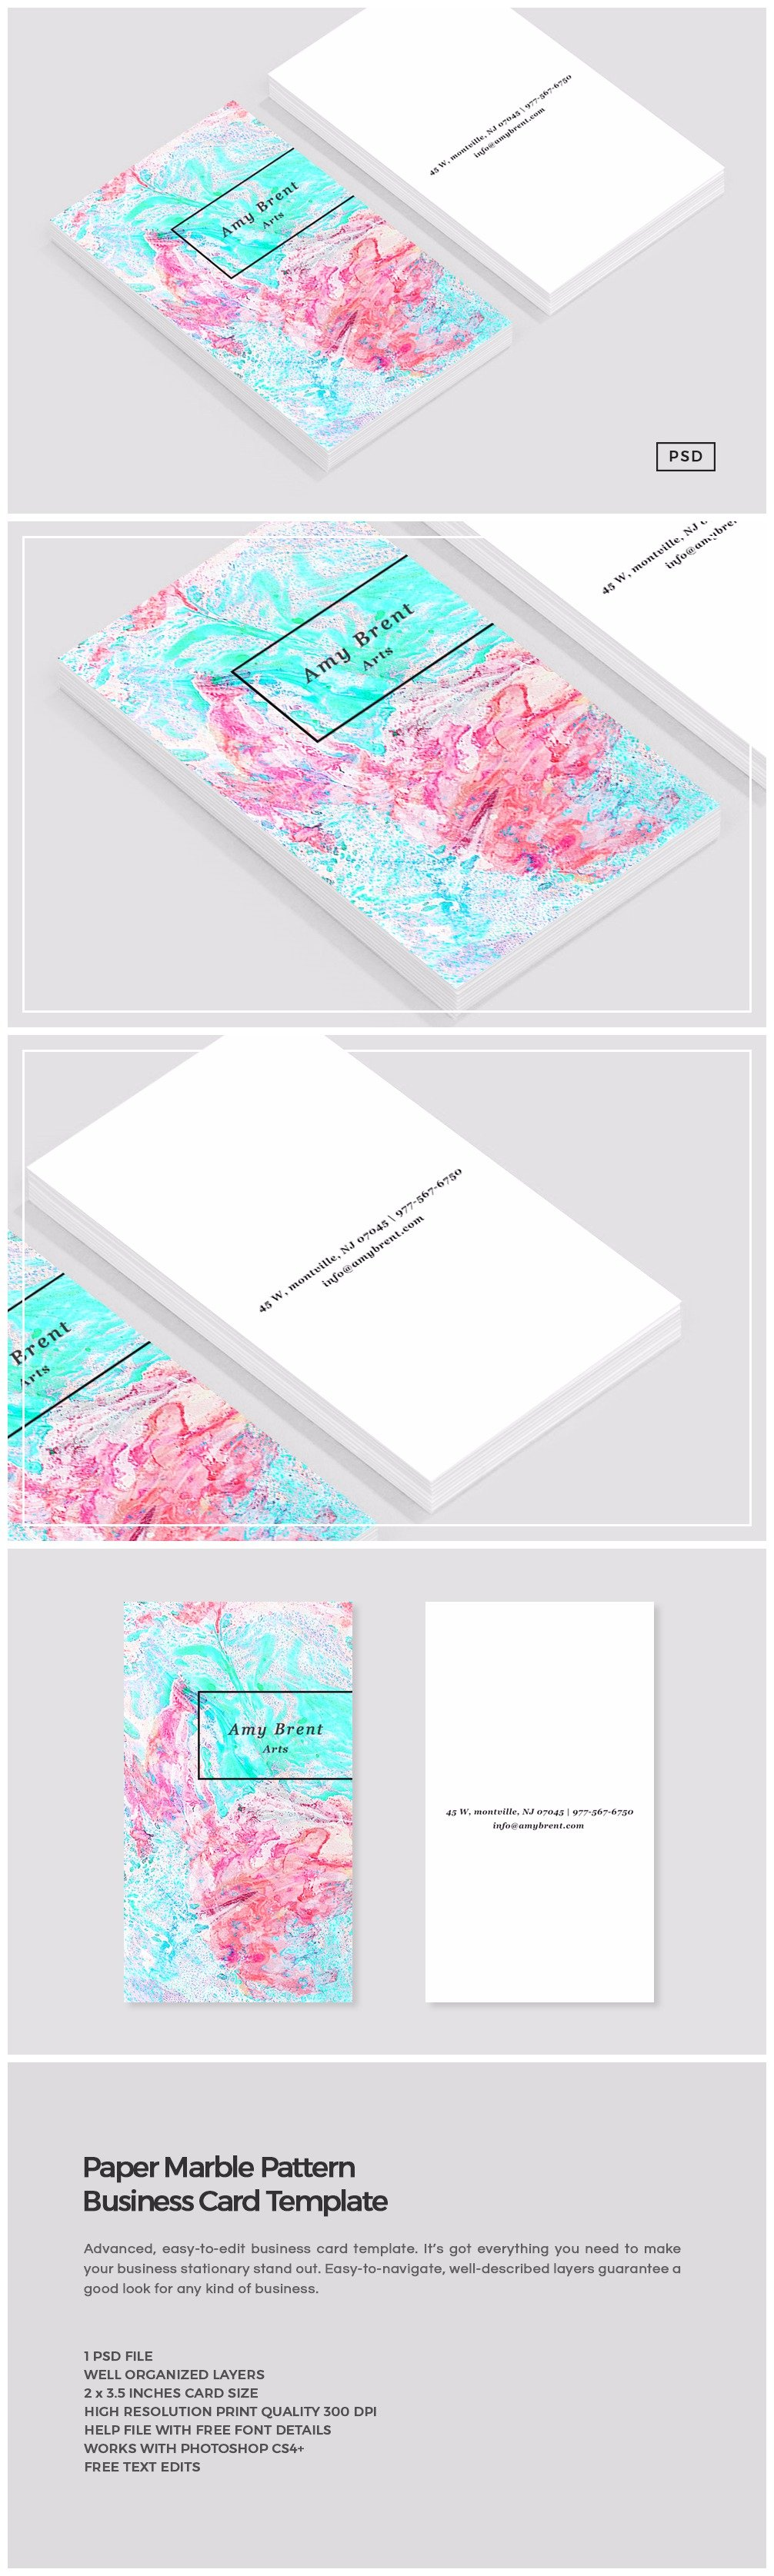 Lovely stock of business card size template business cards and paper marble pattern business card business card templates alramifo Image collections